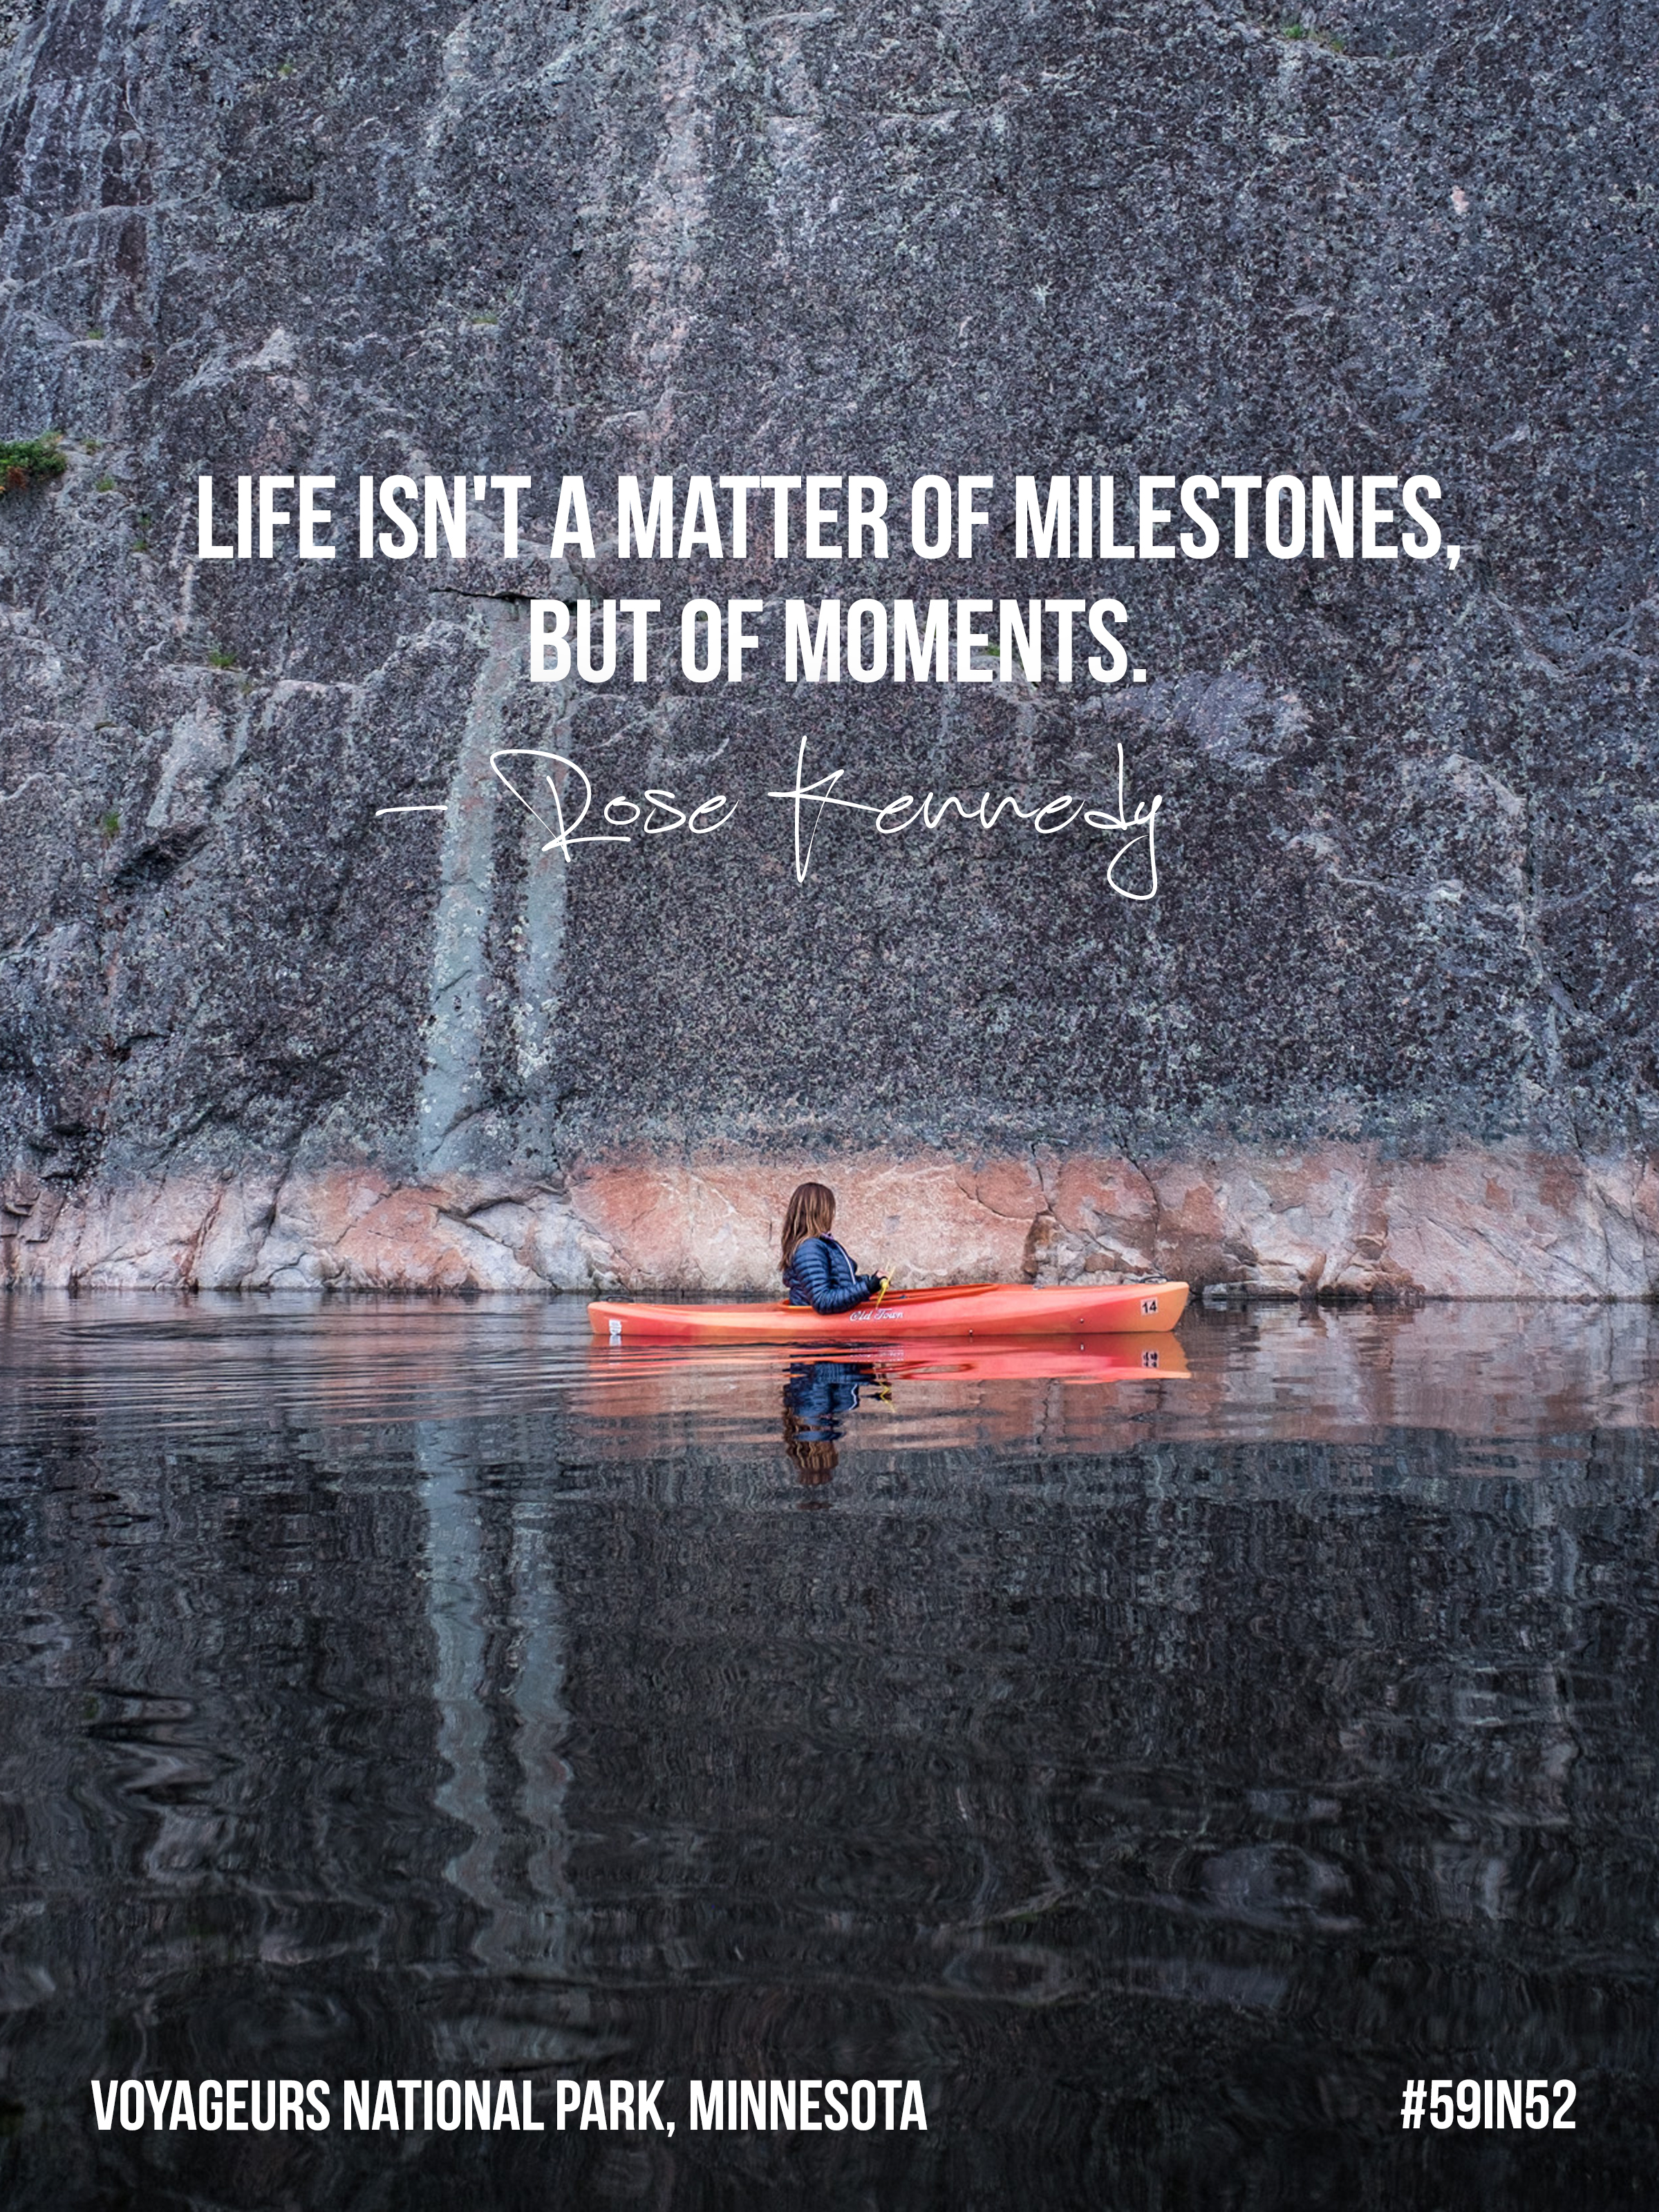 """Life isn't a matter of milestones but of moments."" - Rose Kennedy"